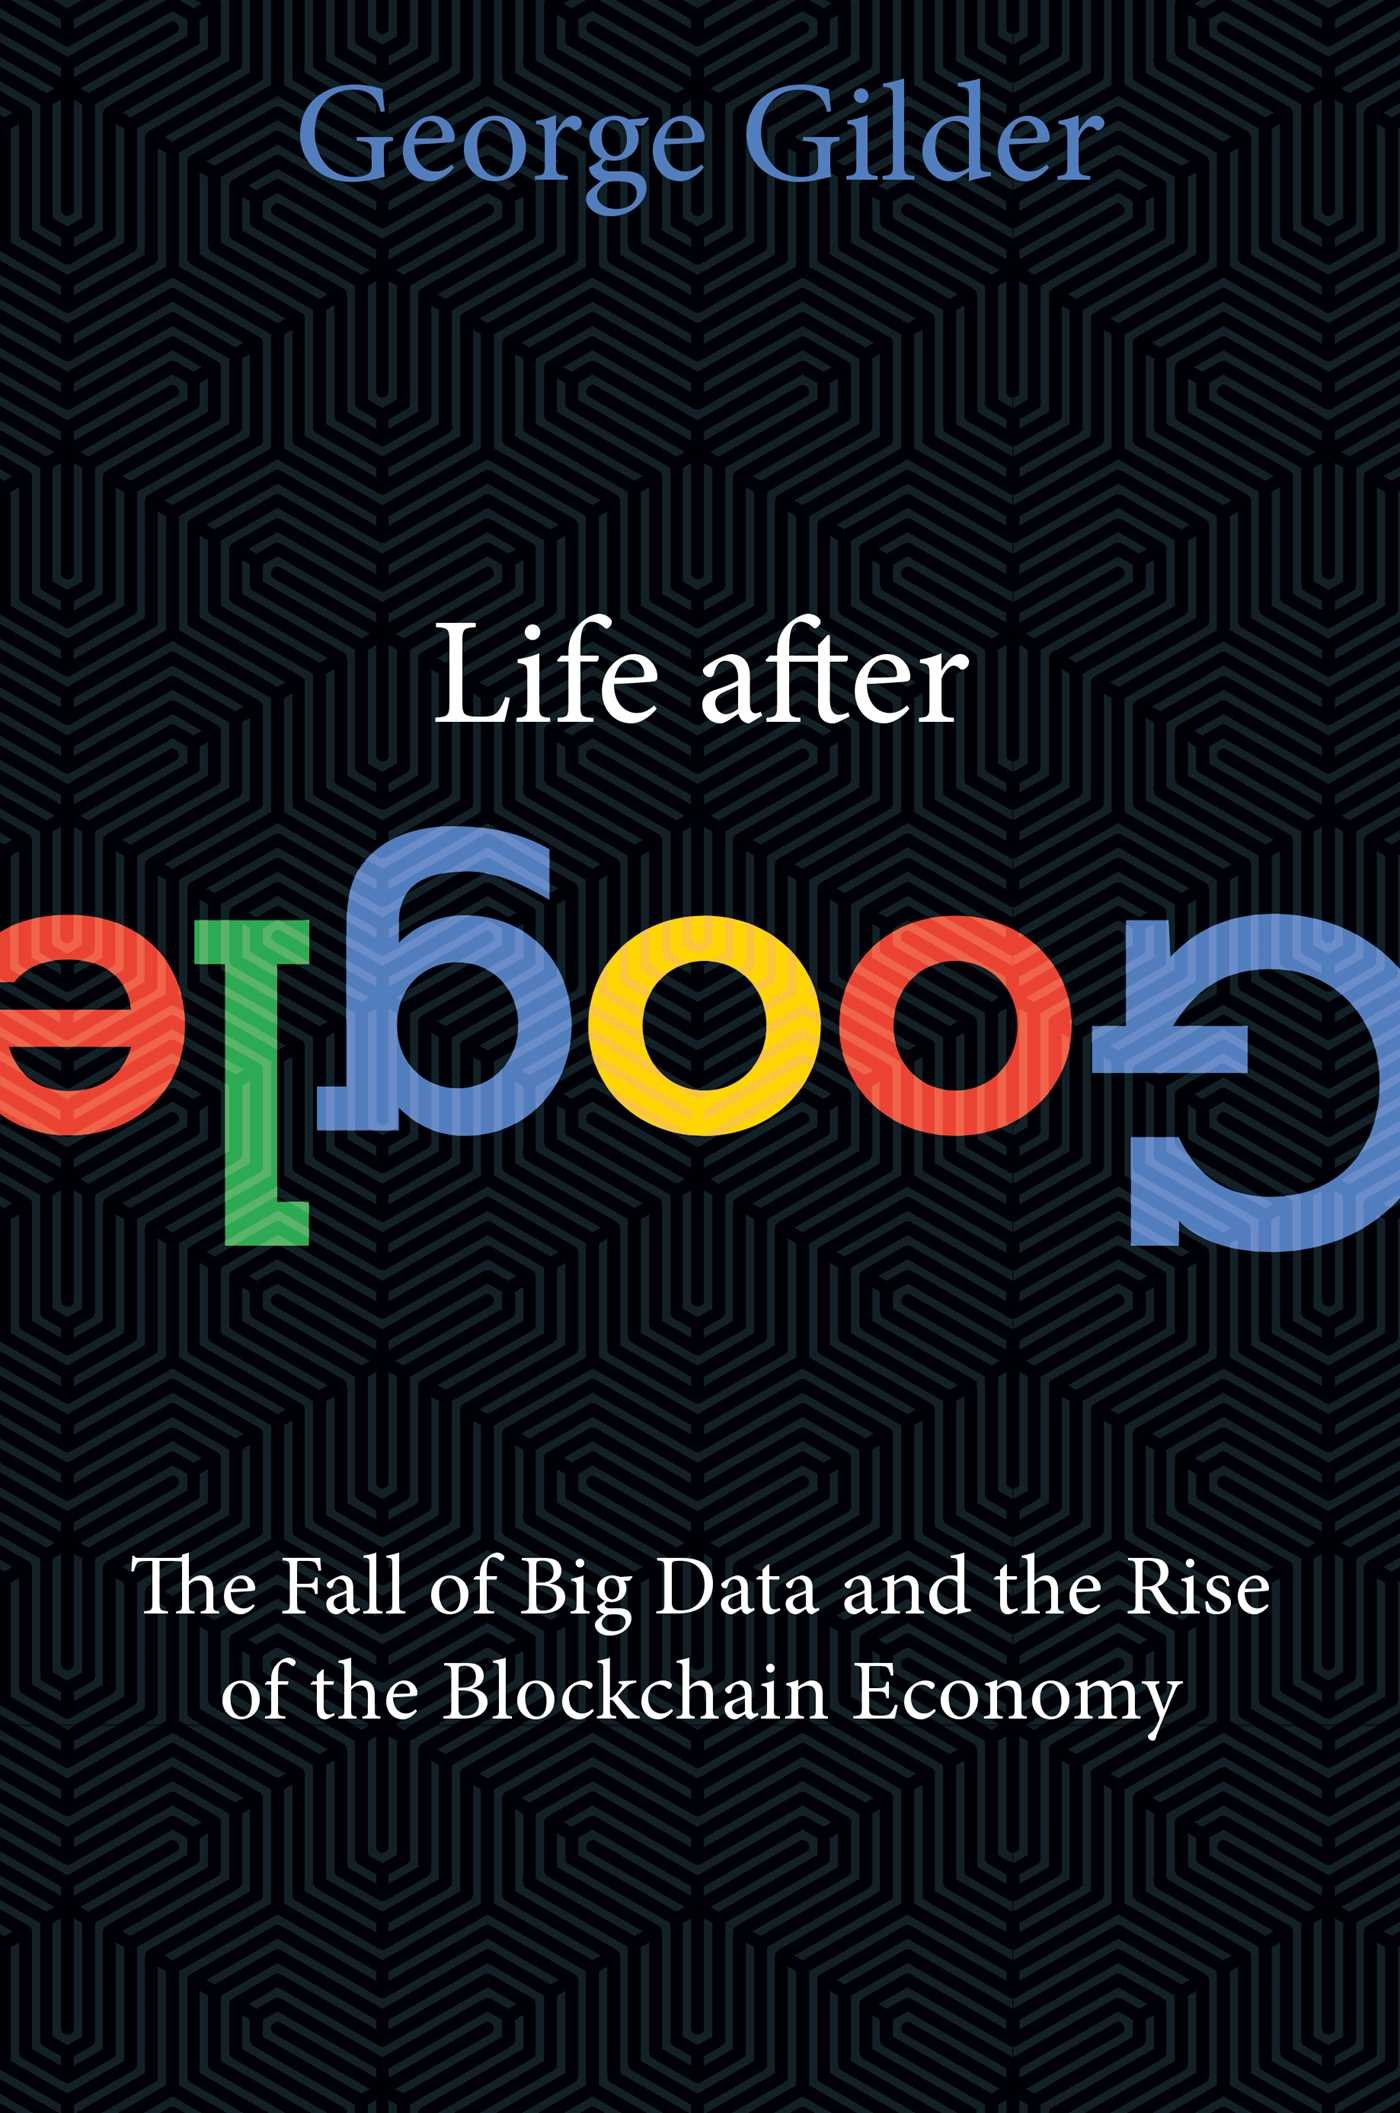 120 Quotes W Links From George Gilders New Book Life After